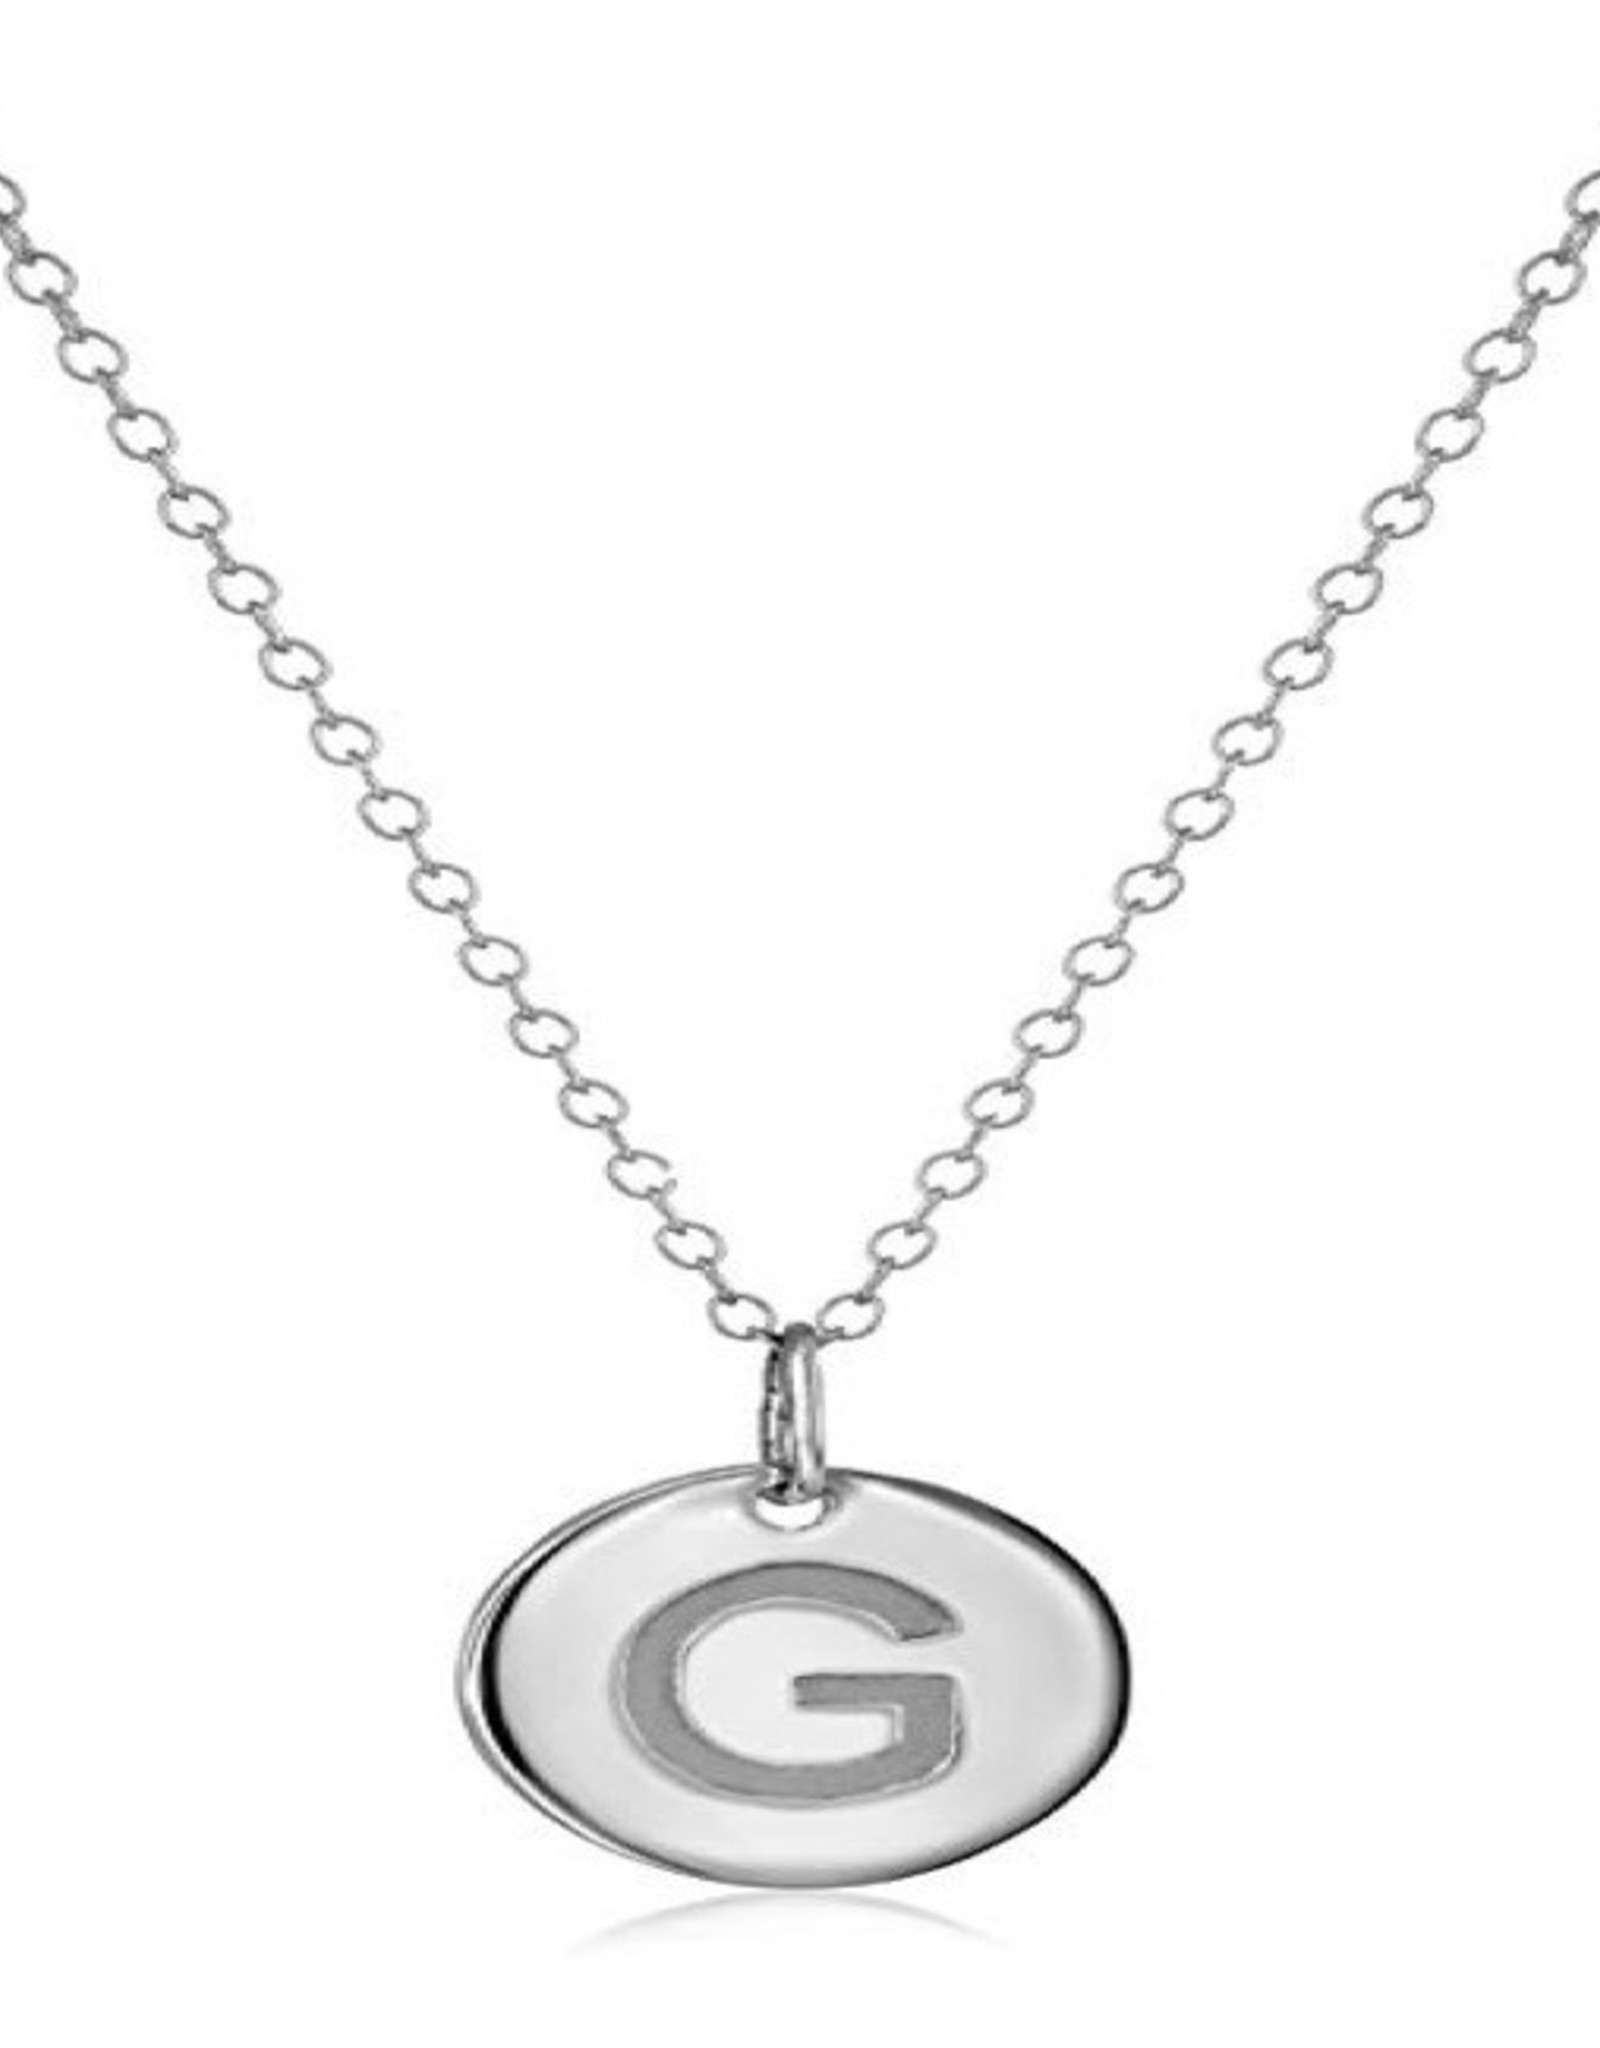 Necklace - Dainty Disc W/ Initial (Silver) (G)